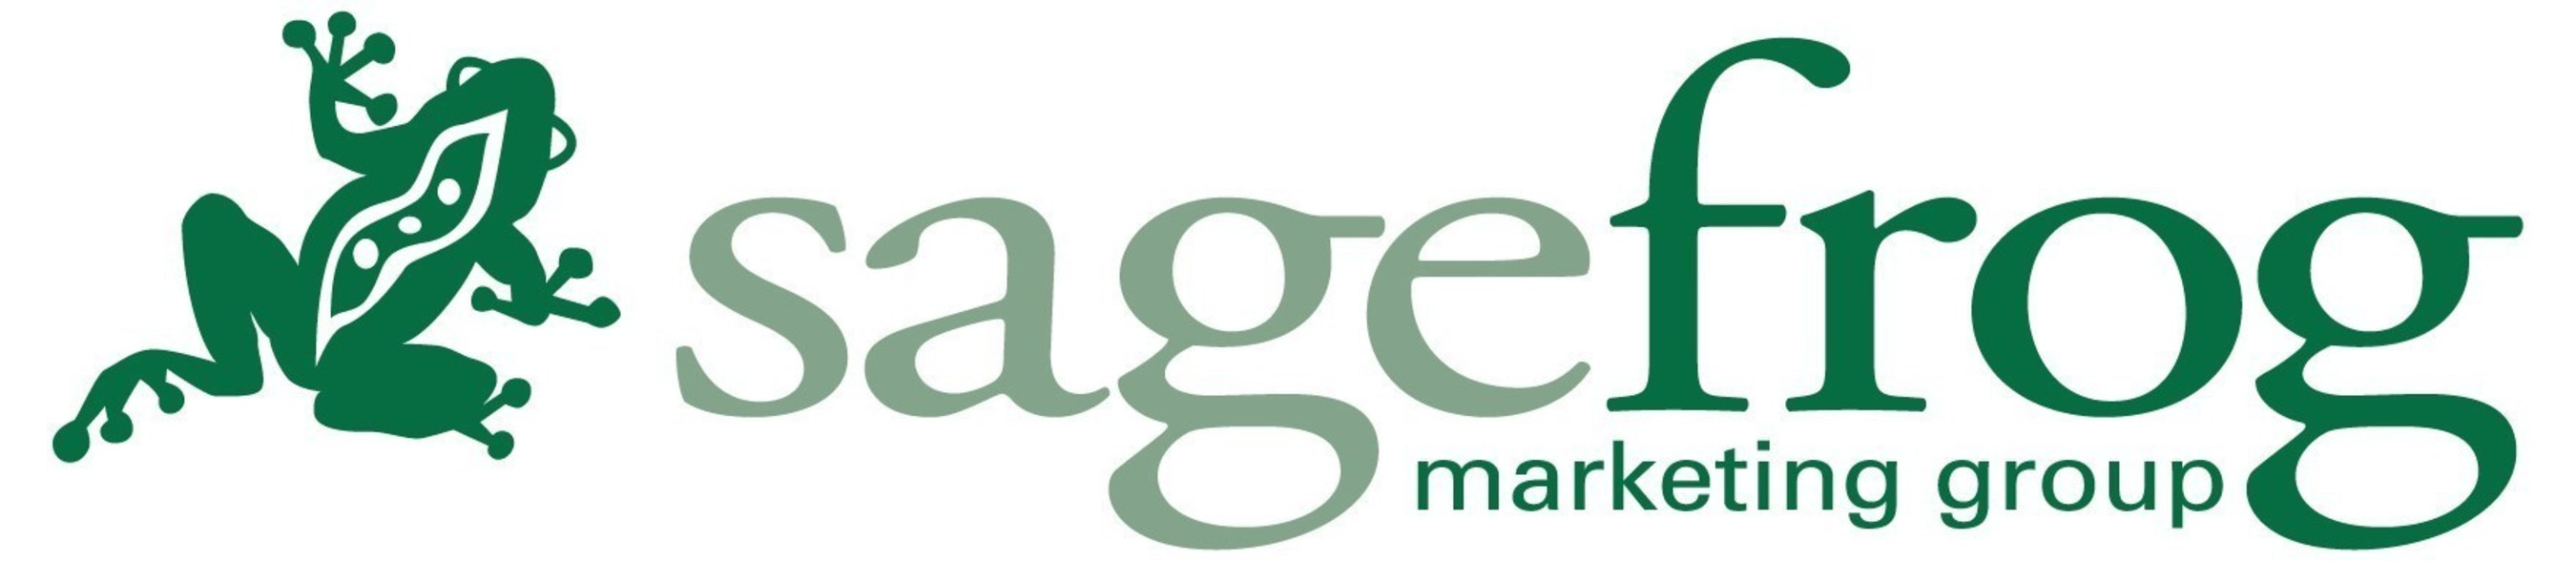 Sagefrog Marketing Group Announces Corporate Rebrand and New Website Launch